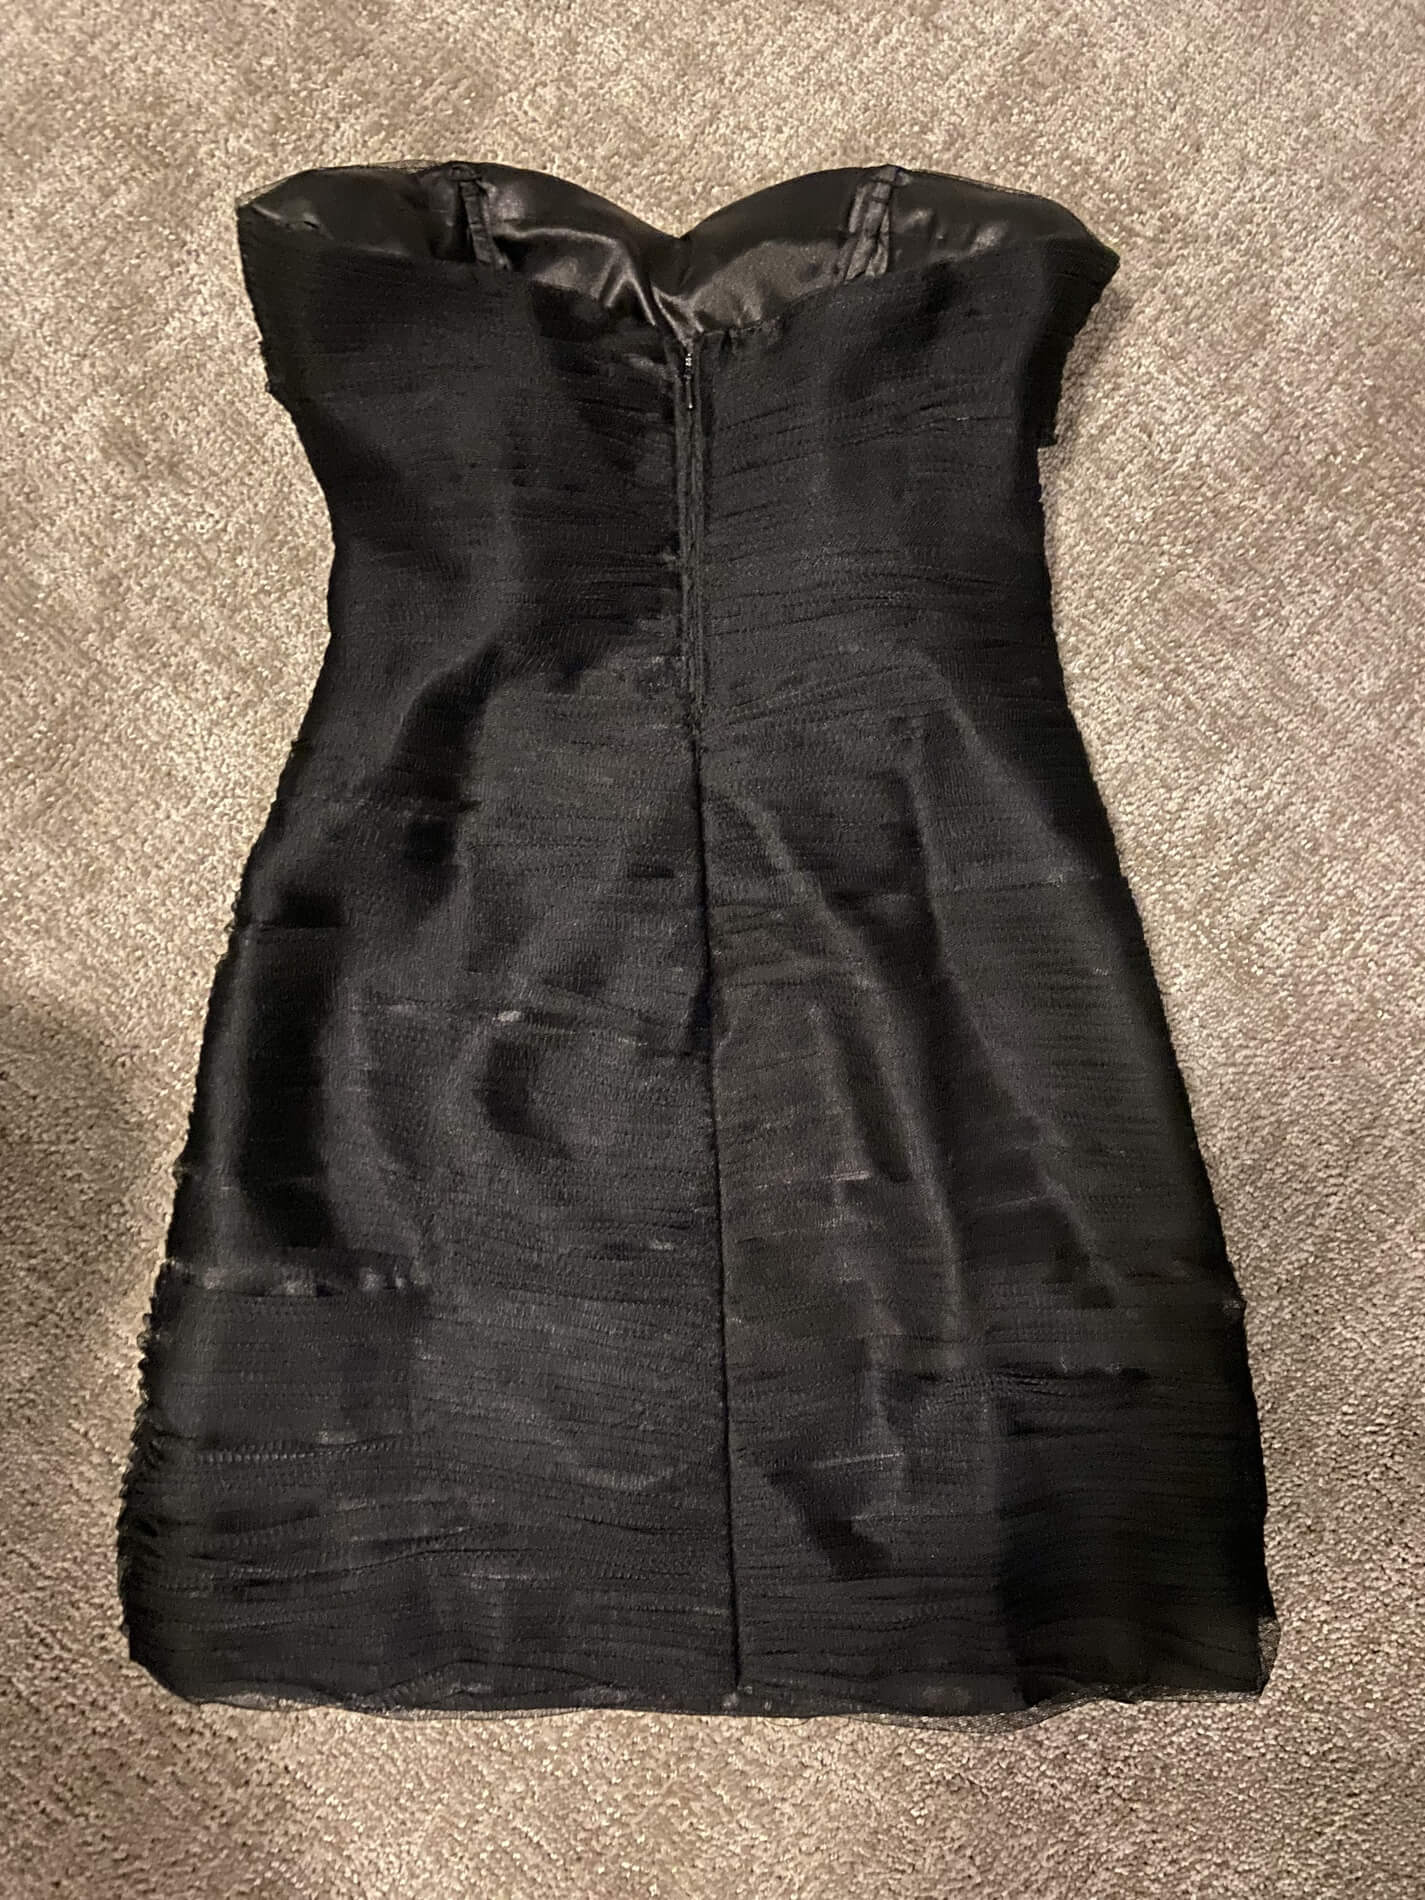 Alyce Paris Black Size 4 Jewelled Mini Cocktail Dress on Queenly